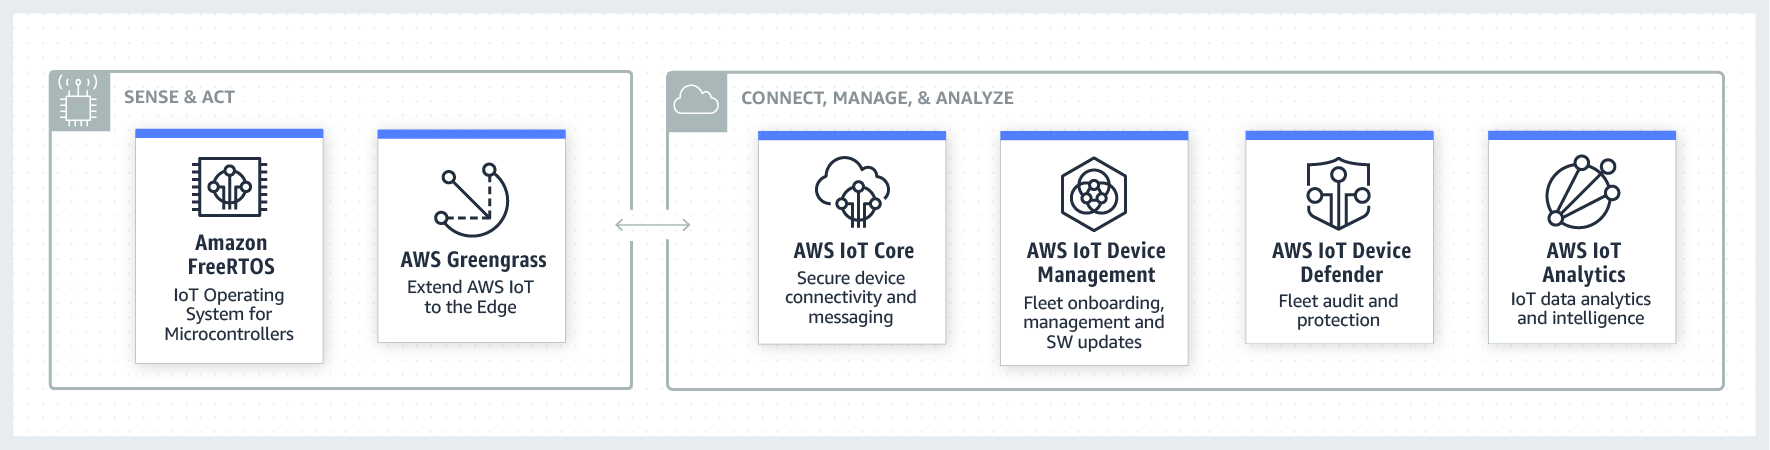 AWS IoT Category How It Works